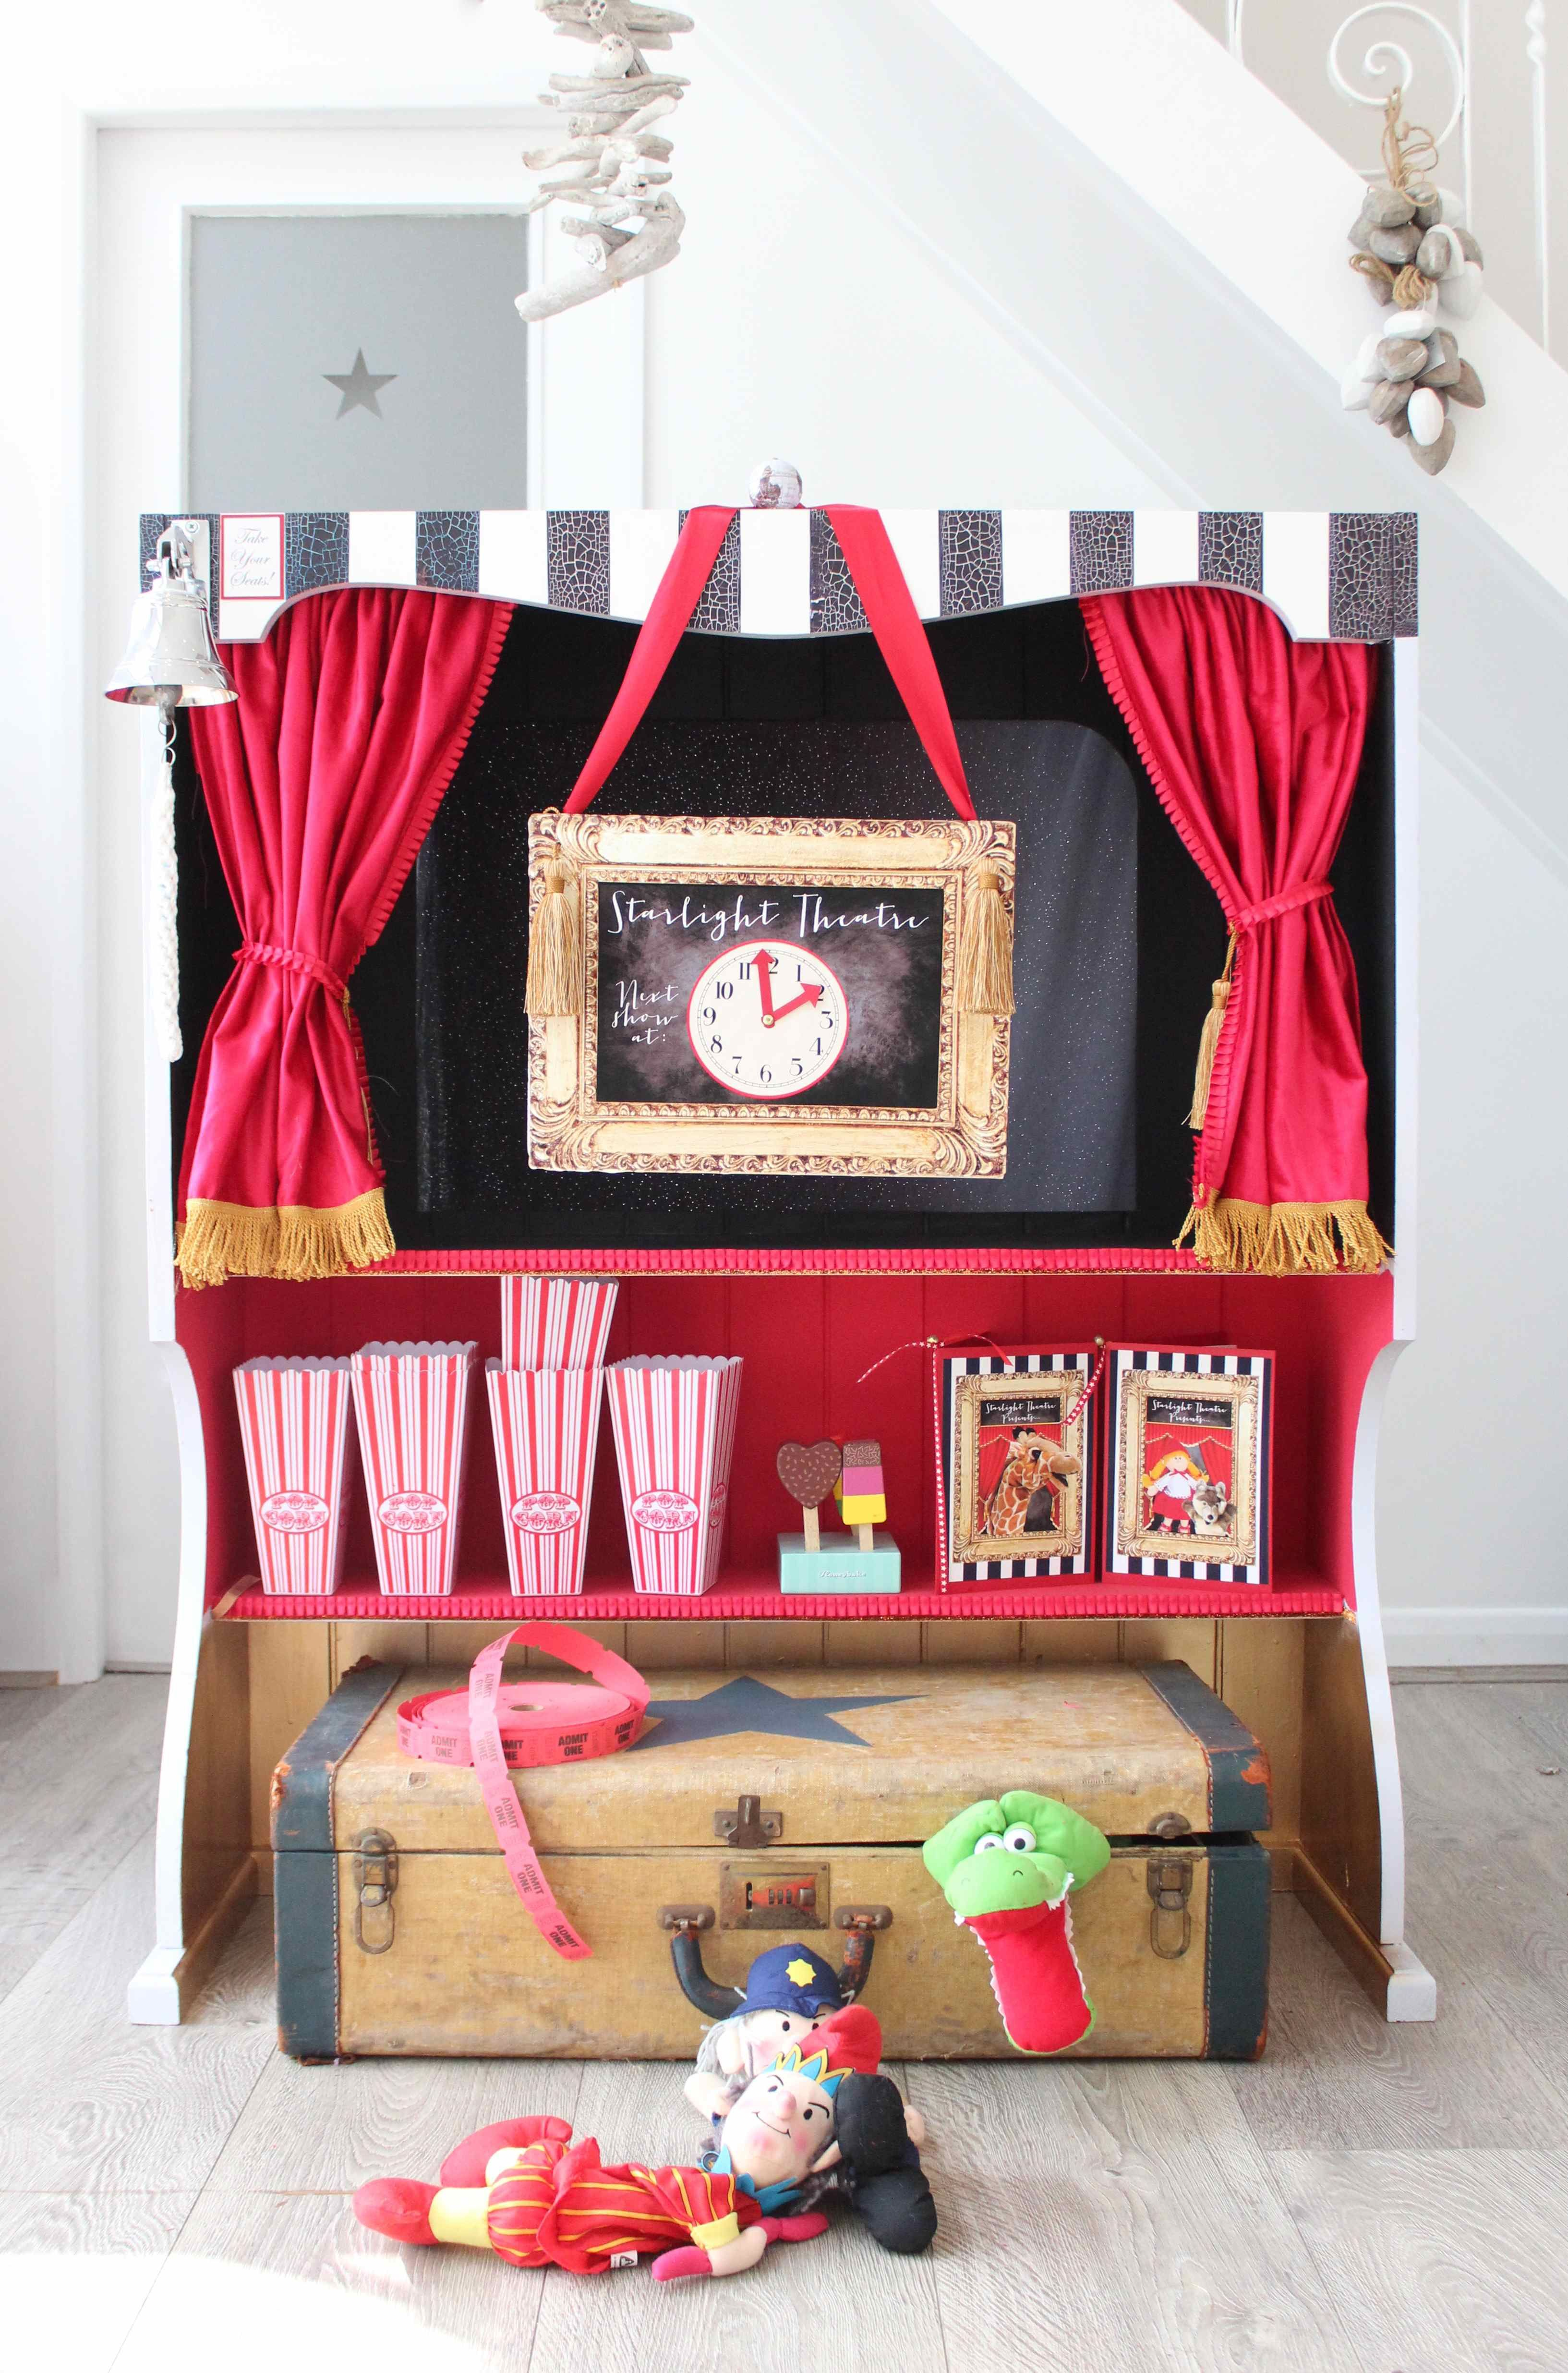 welcome to the starlight puppet theatre! (how to make a home puppet